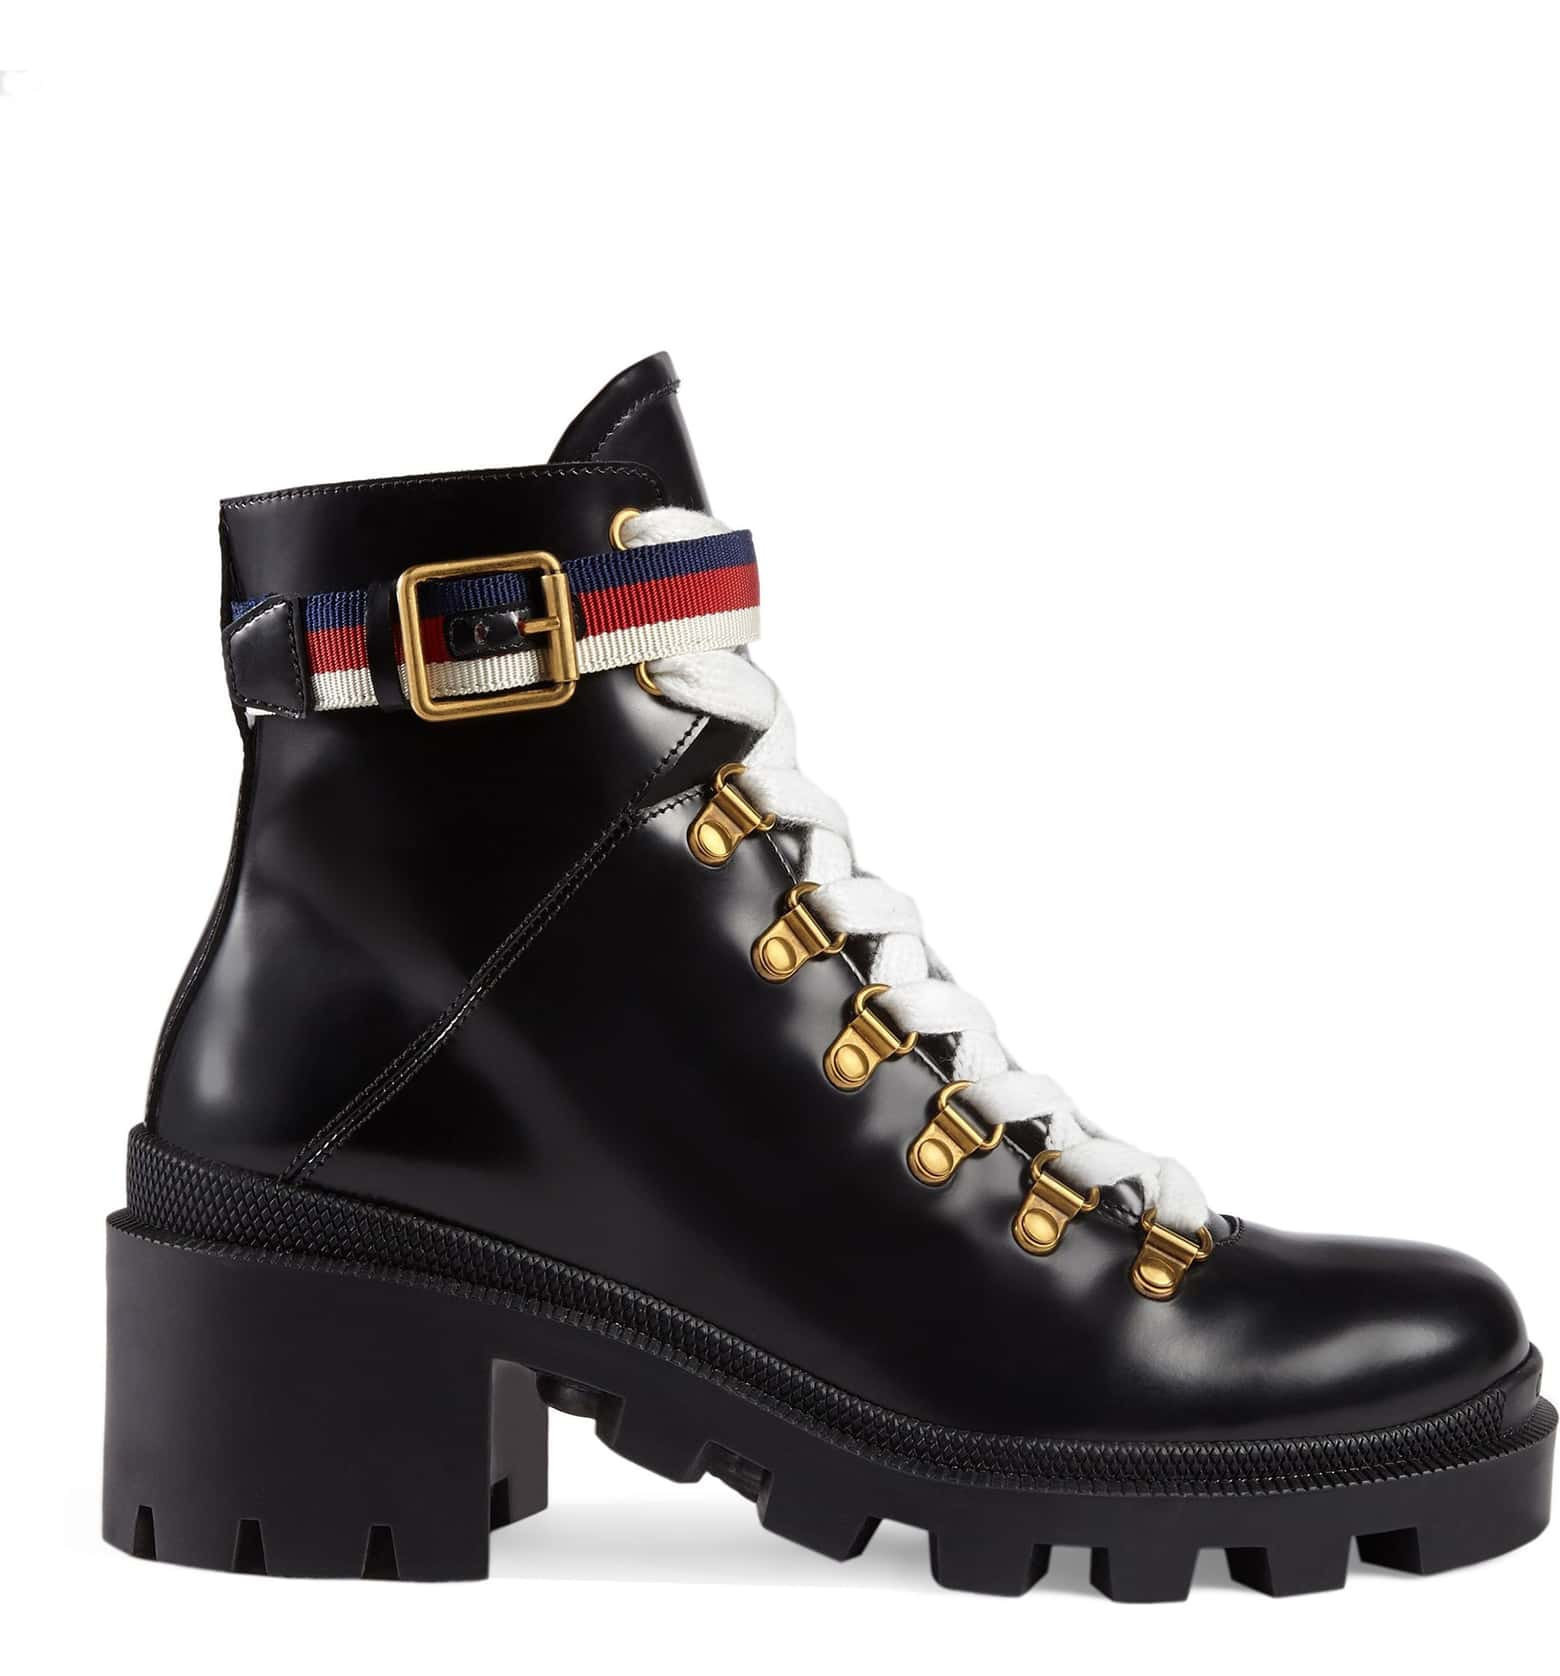 https://shop.nordstrom.com/s/gucci-trip-lug-sole-combat-boot-women/4637784?origin=keywordsearch-personalizedsort&breadcrumb=Home%2FAll%20Results&color=black%20leather